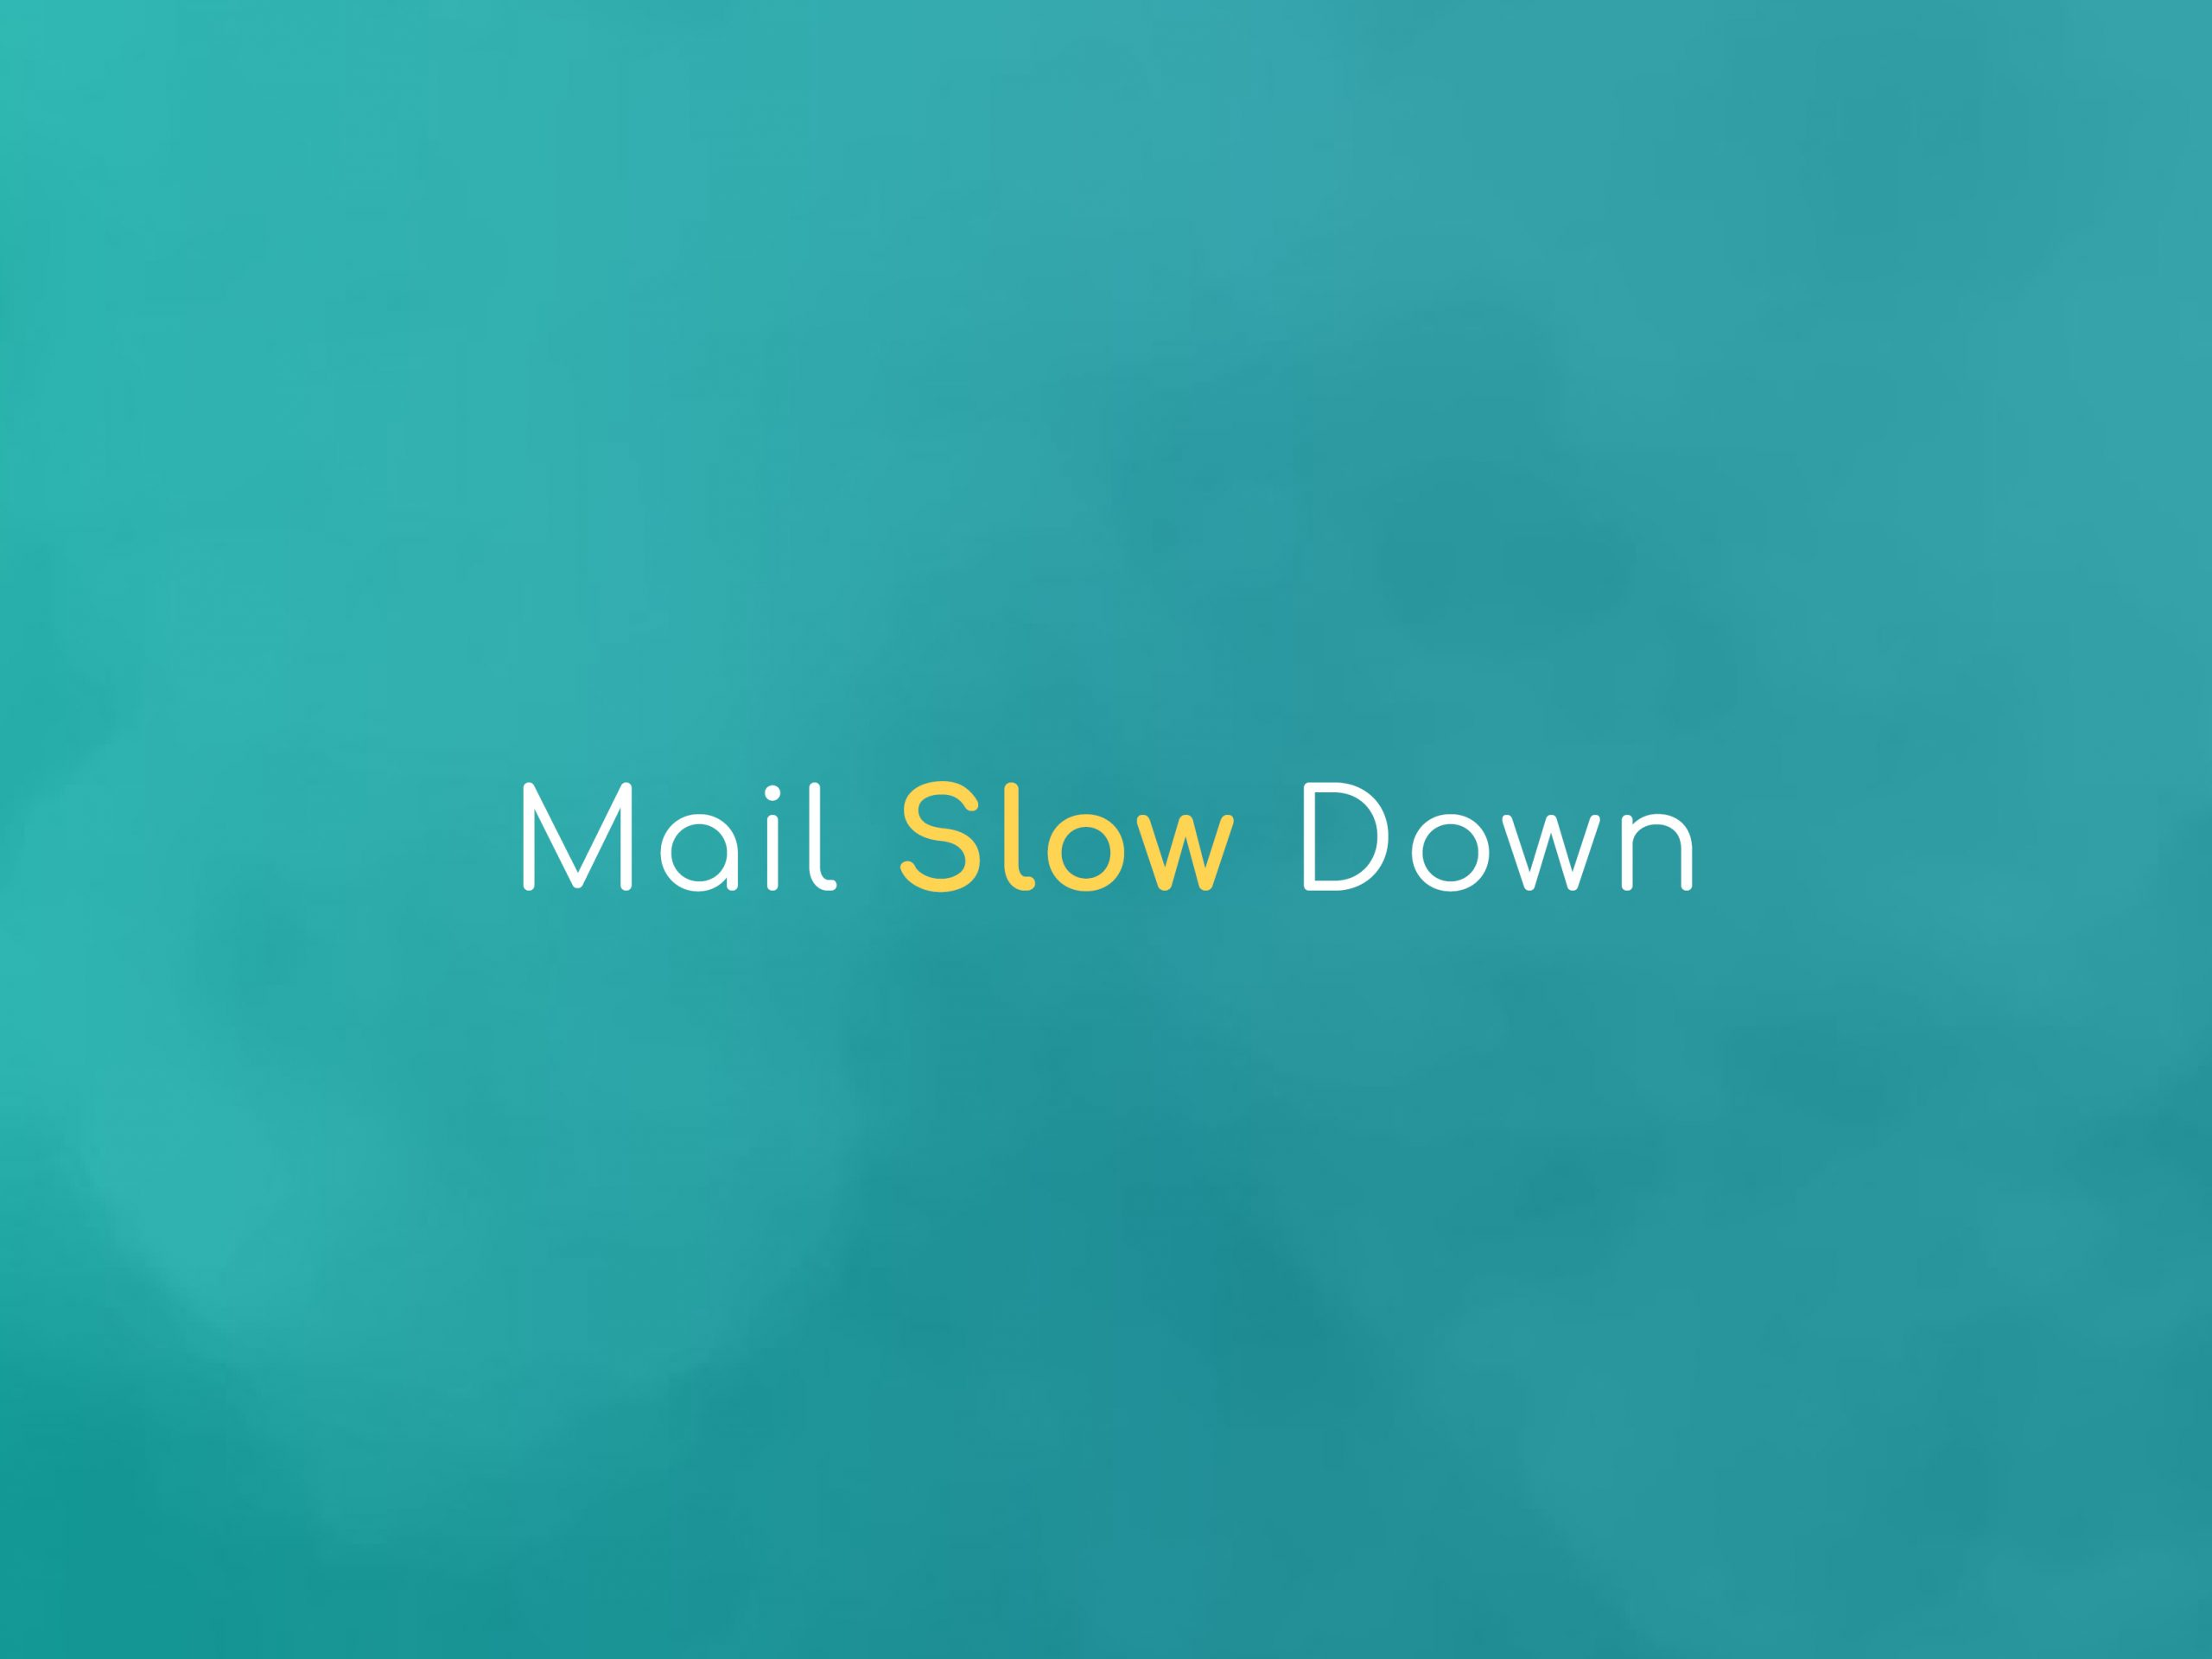 Mail Slow Down